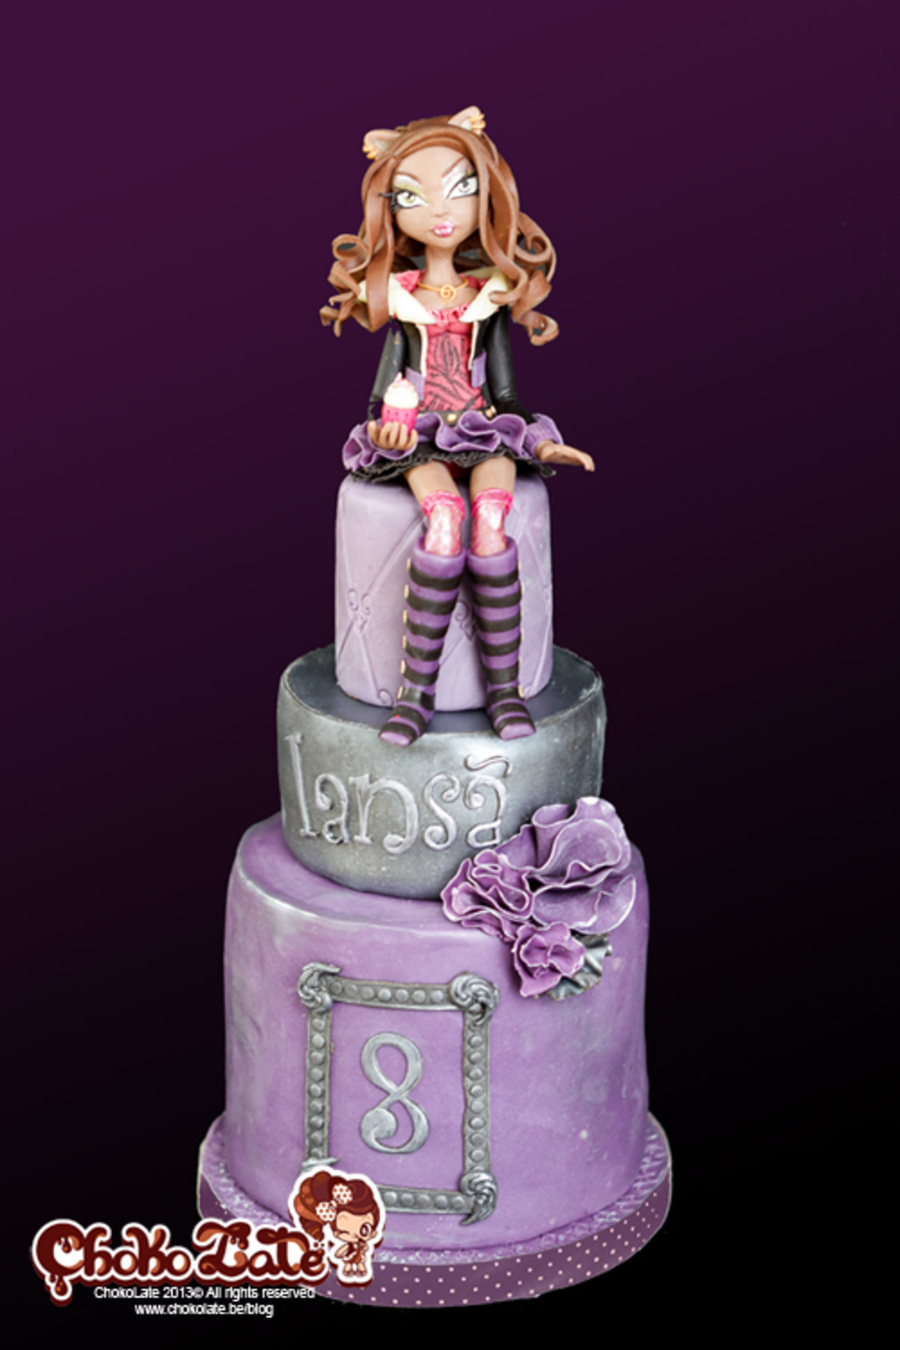 Outstanding Monster High Birthday Cake Clawdeen Cakecentral Com Funny Birthday Cards Online Fluifree Goldxyz